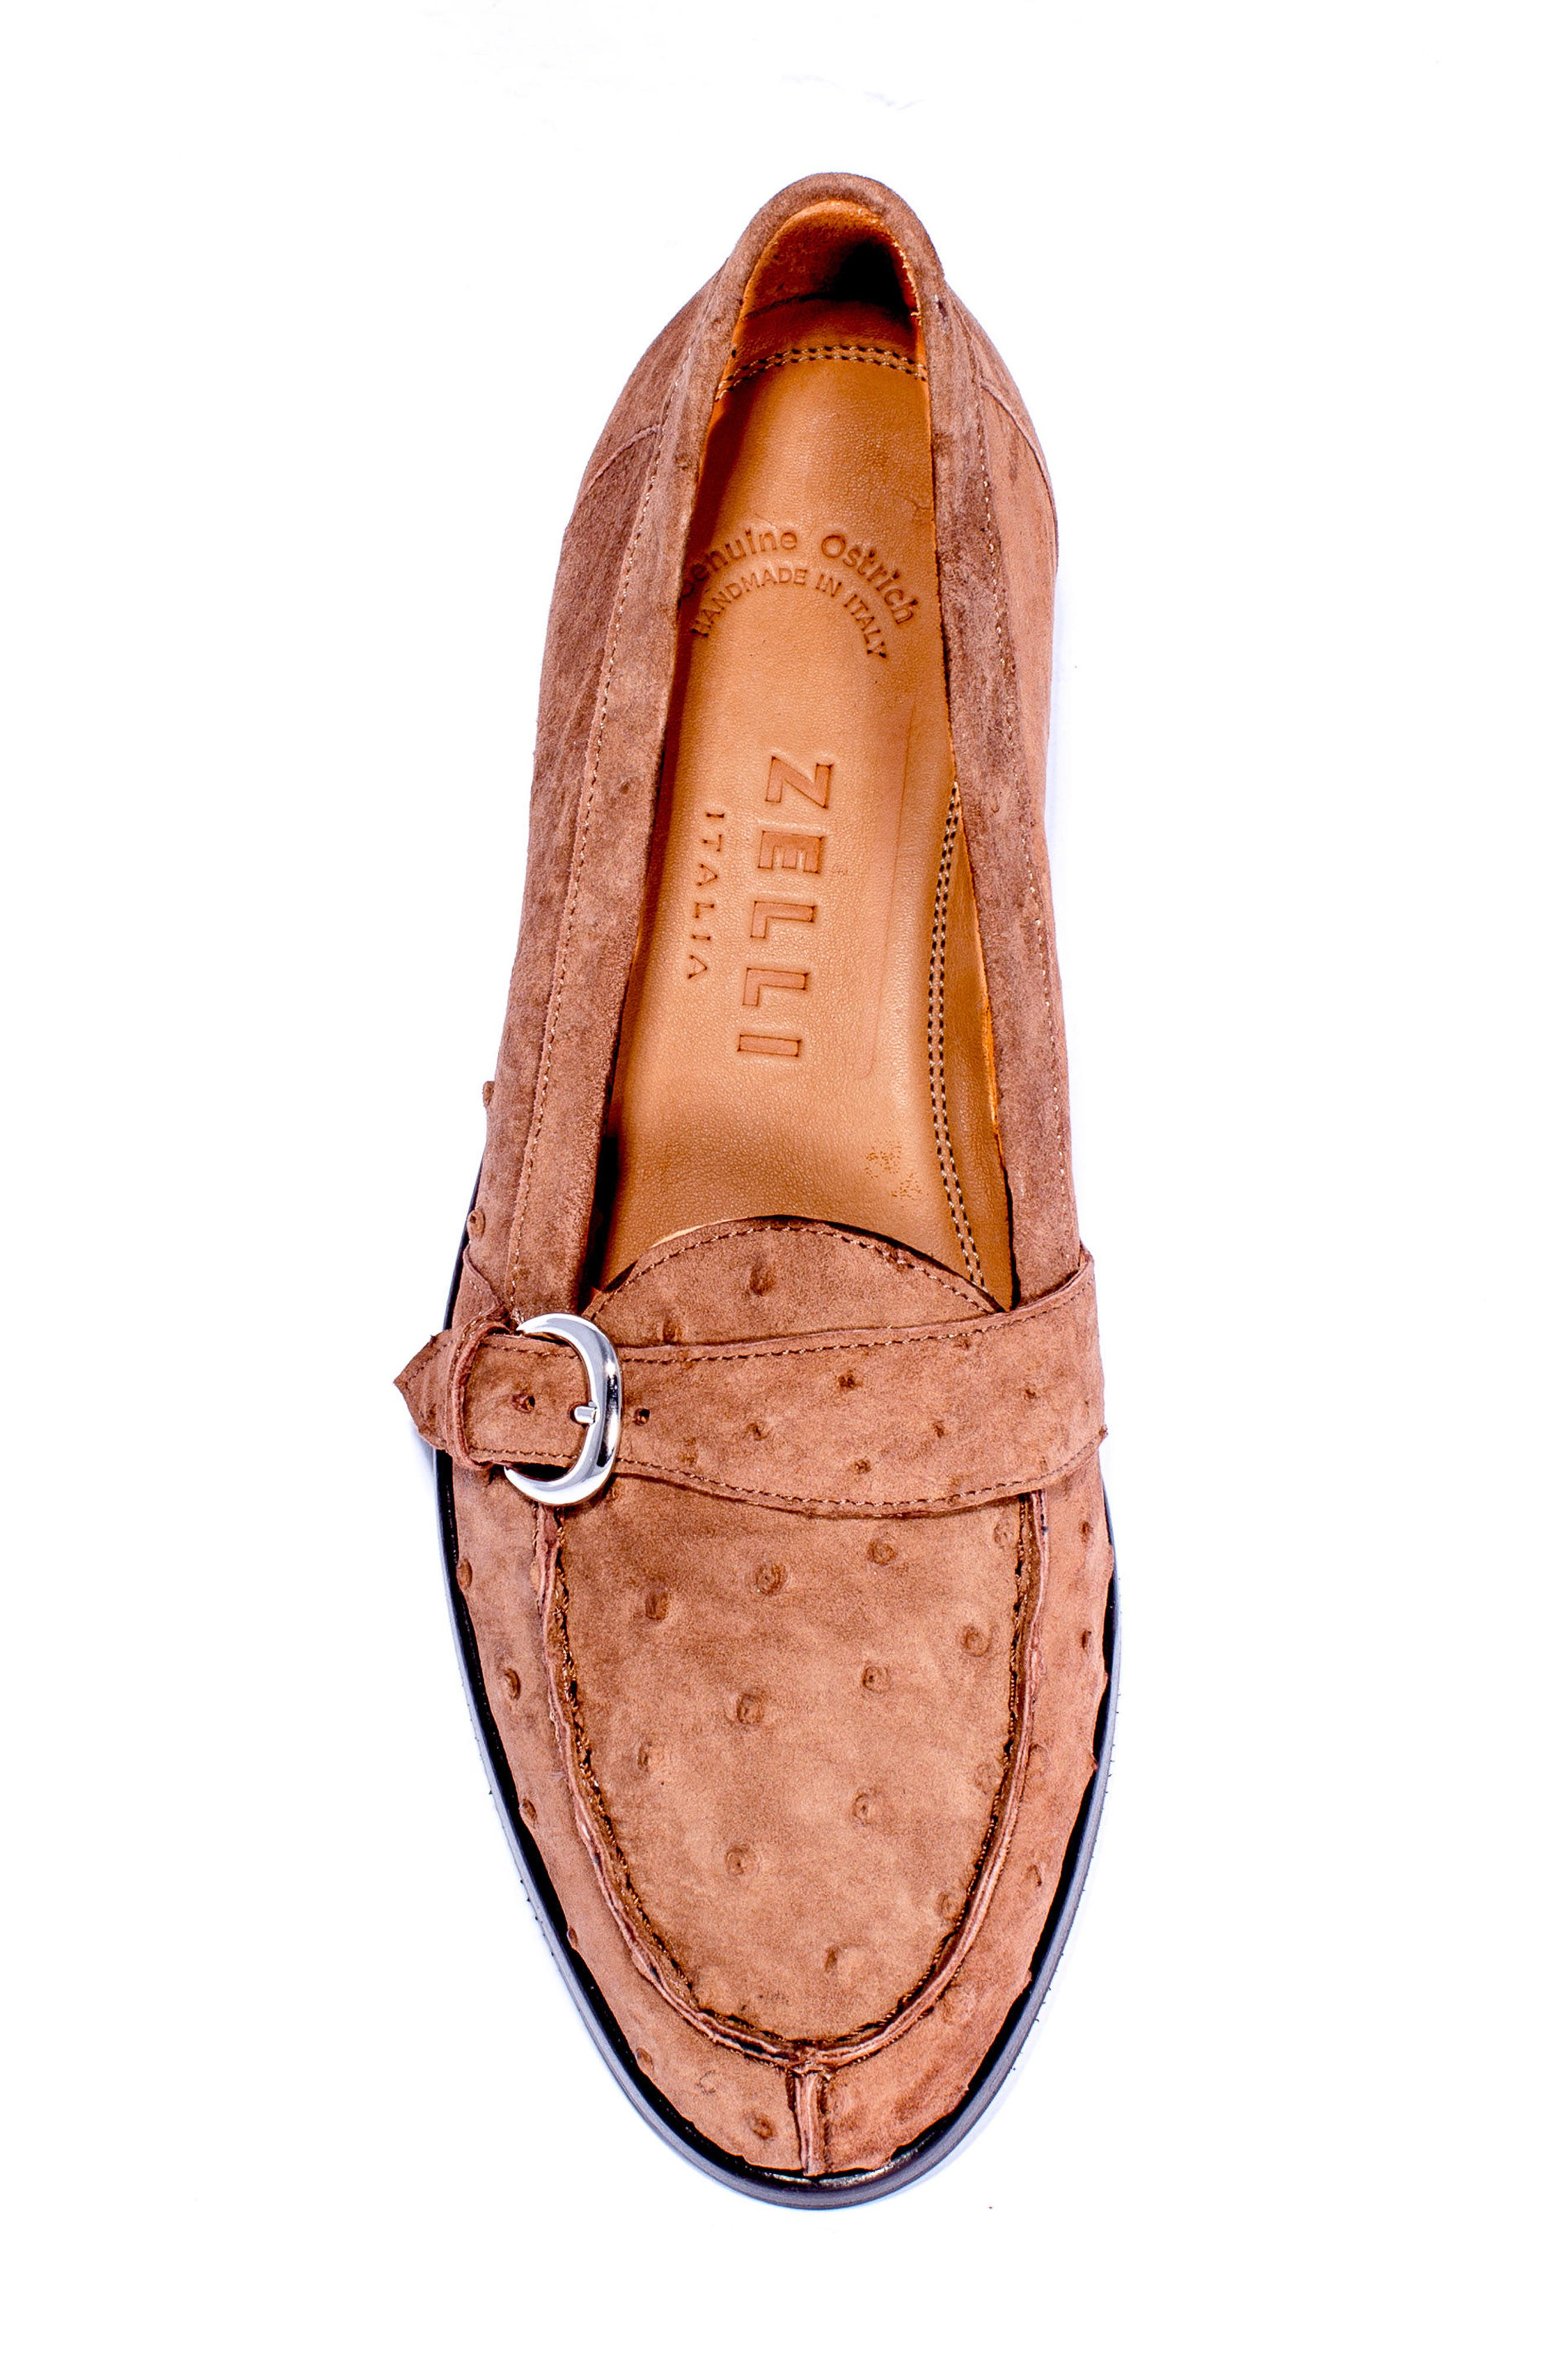 Orlando Teju Ostrich Loafer,                             Alternate thumbnail 5, color,                             200